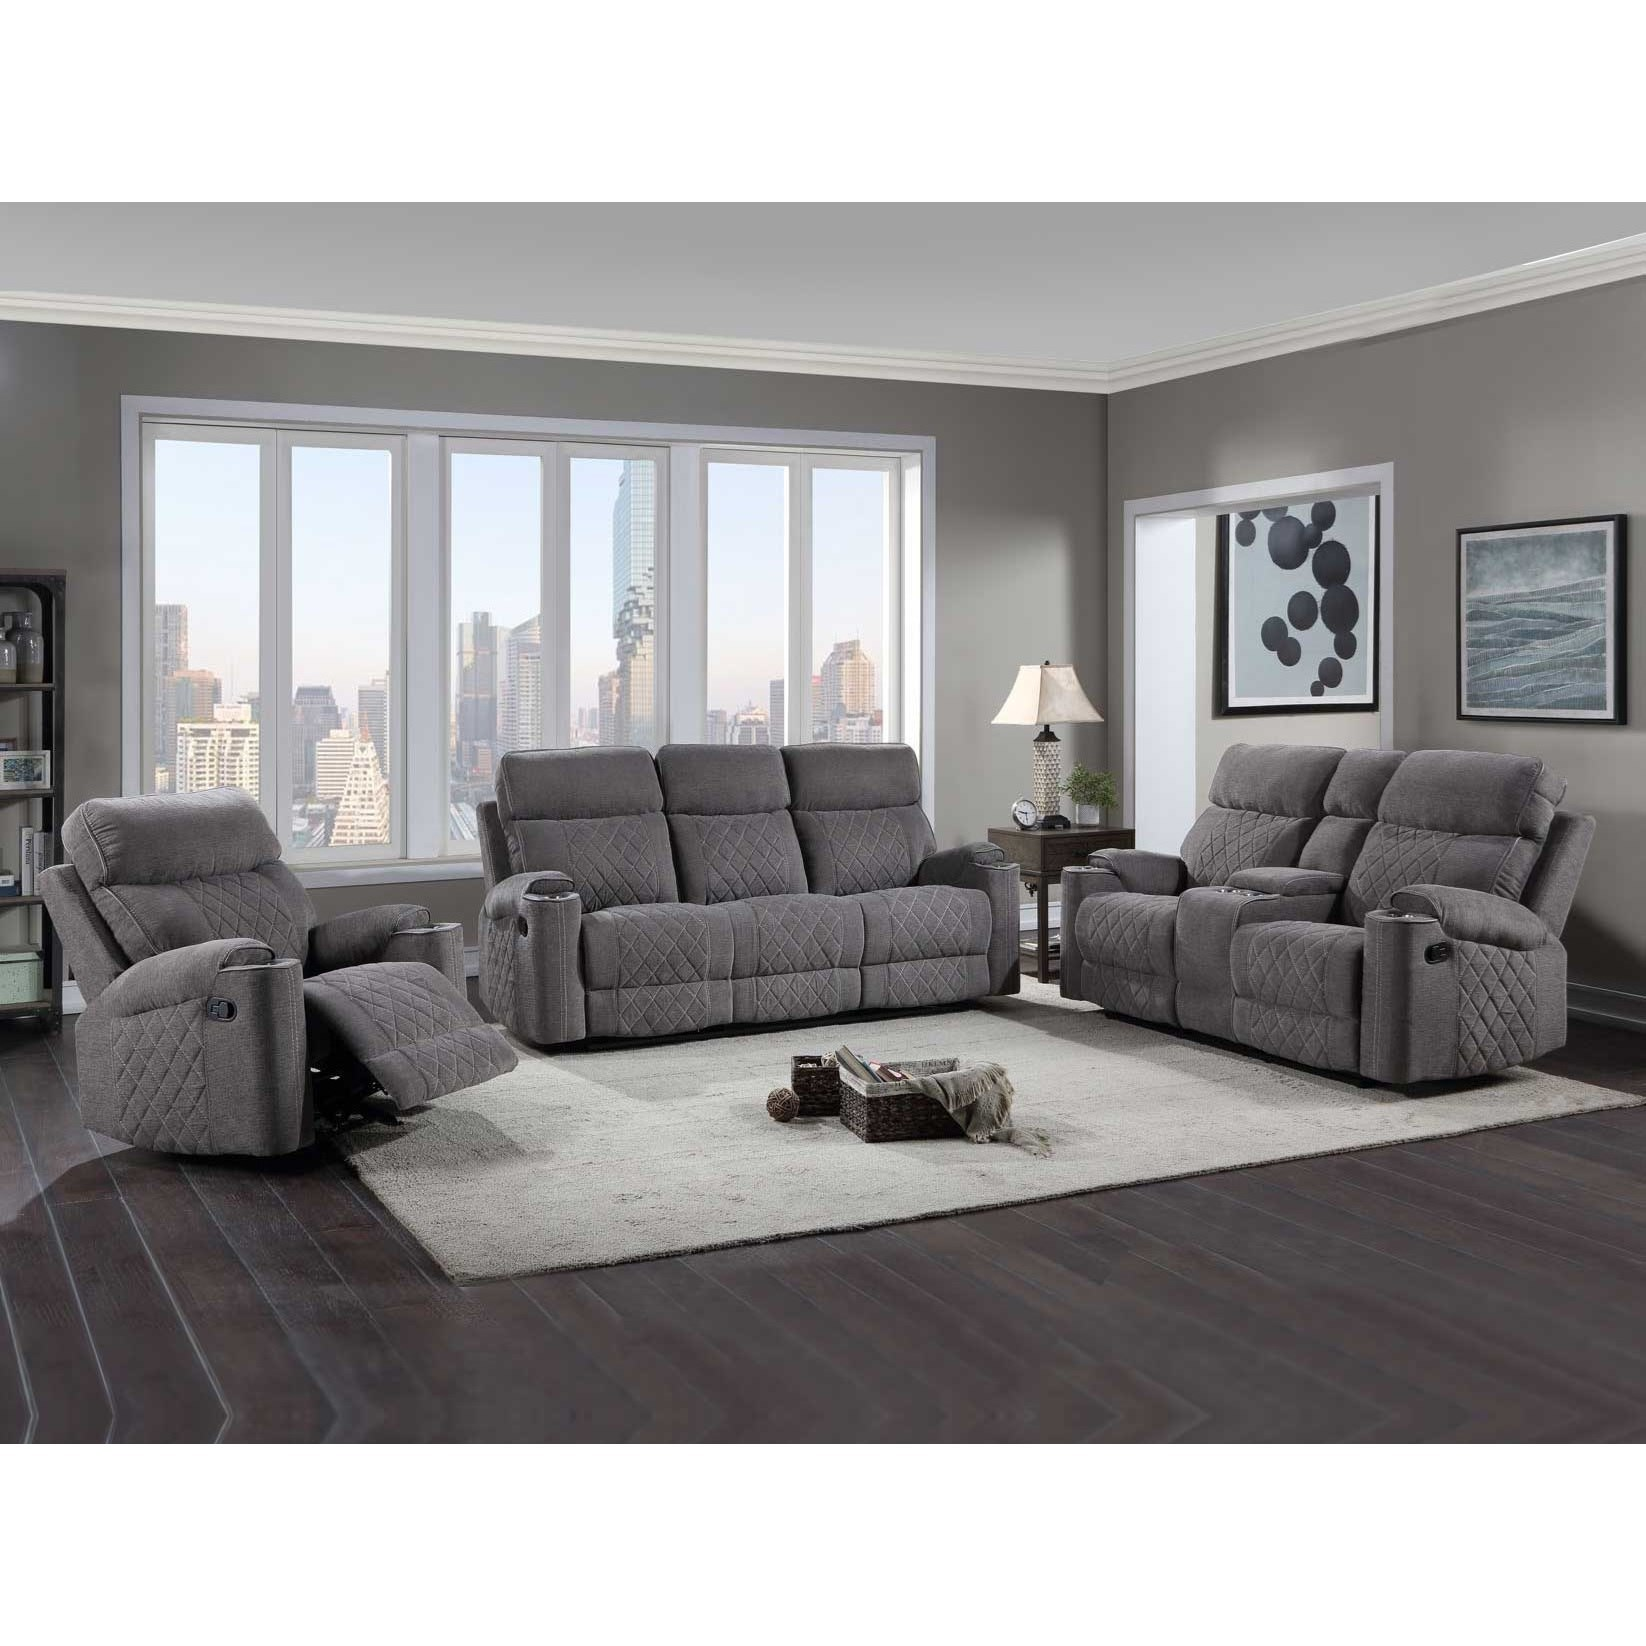 Crawford Reclining Living Room Group by Steve Silver at Northeast Factory Direct